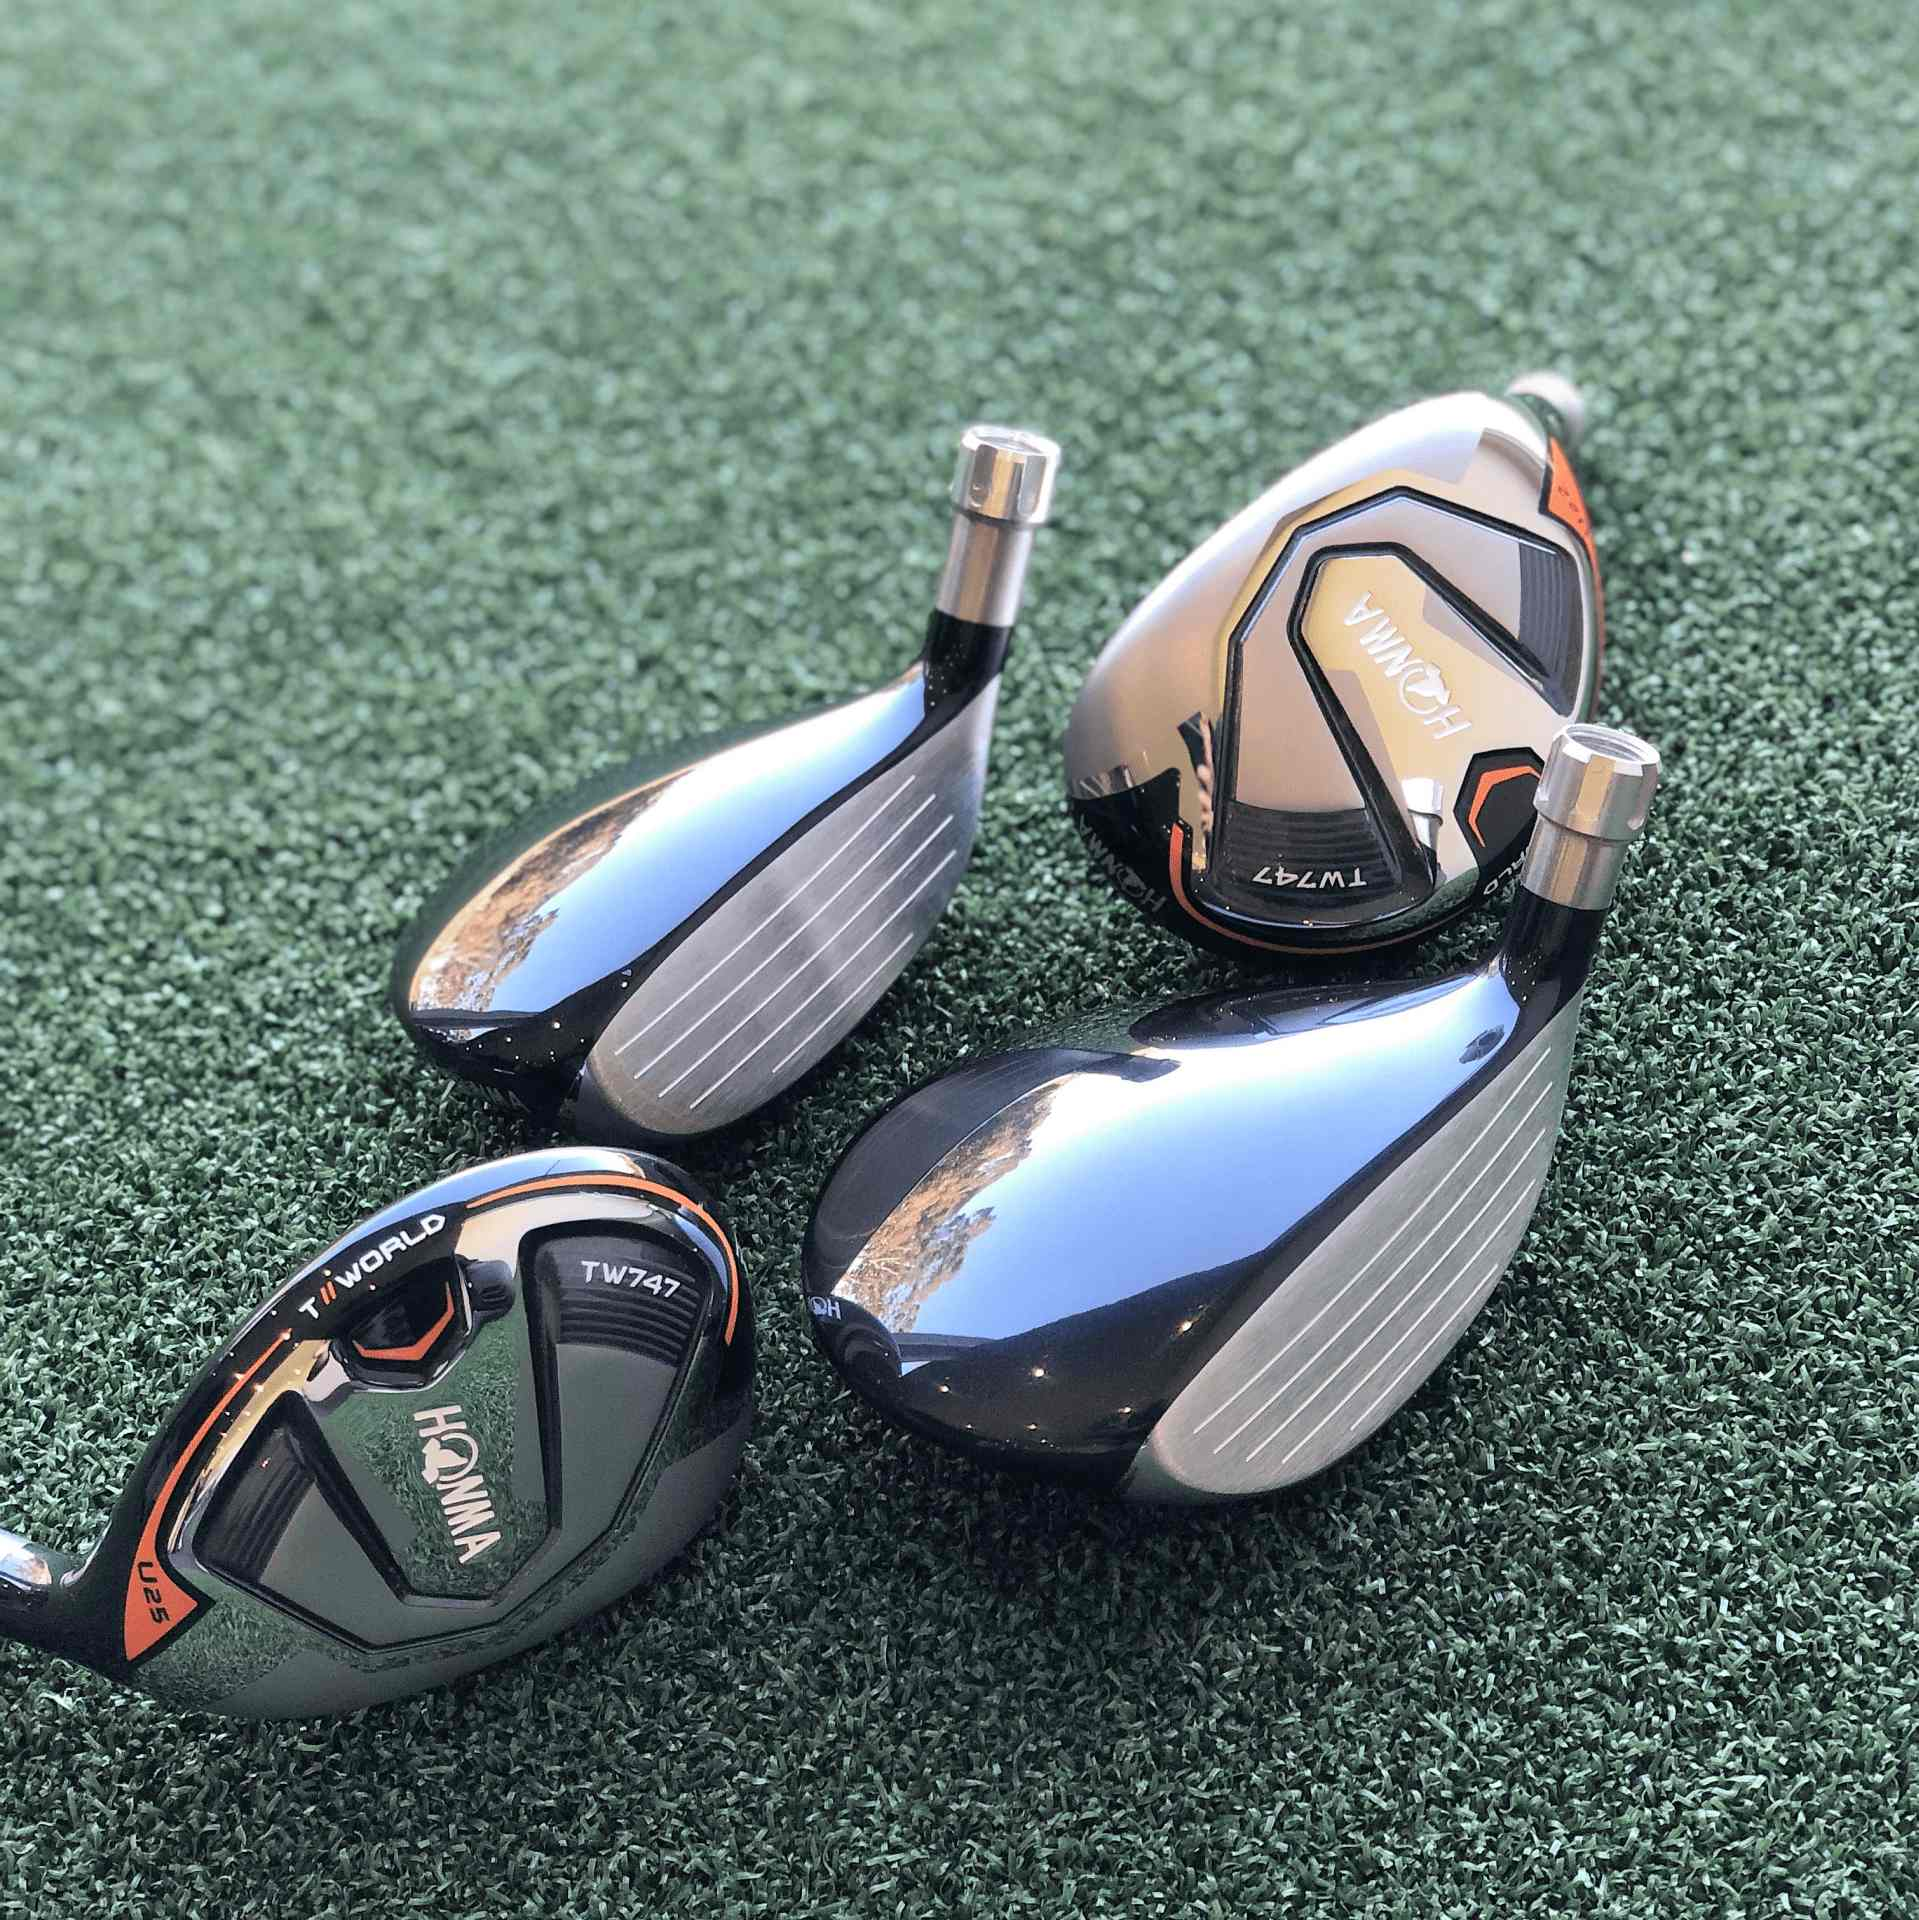 Honma TW747 Fairway and Hybrid